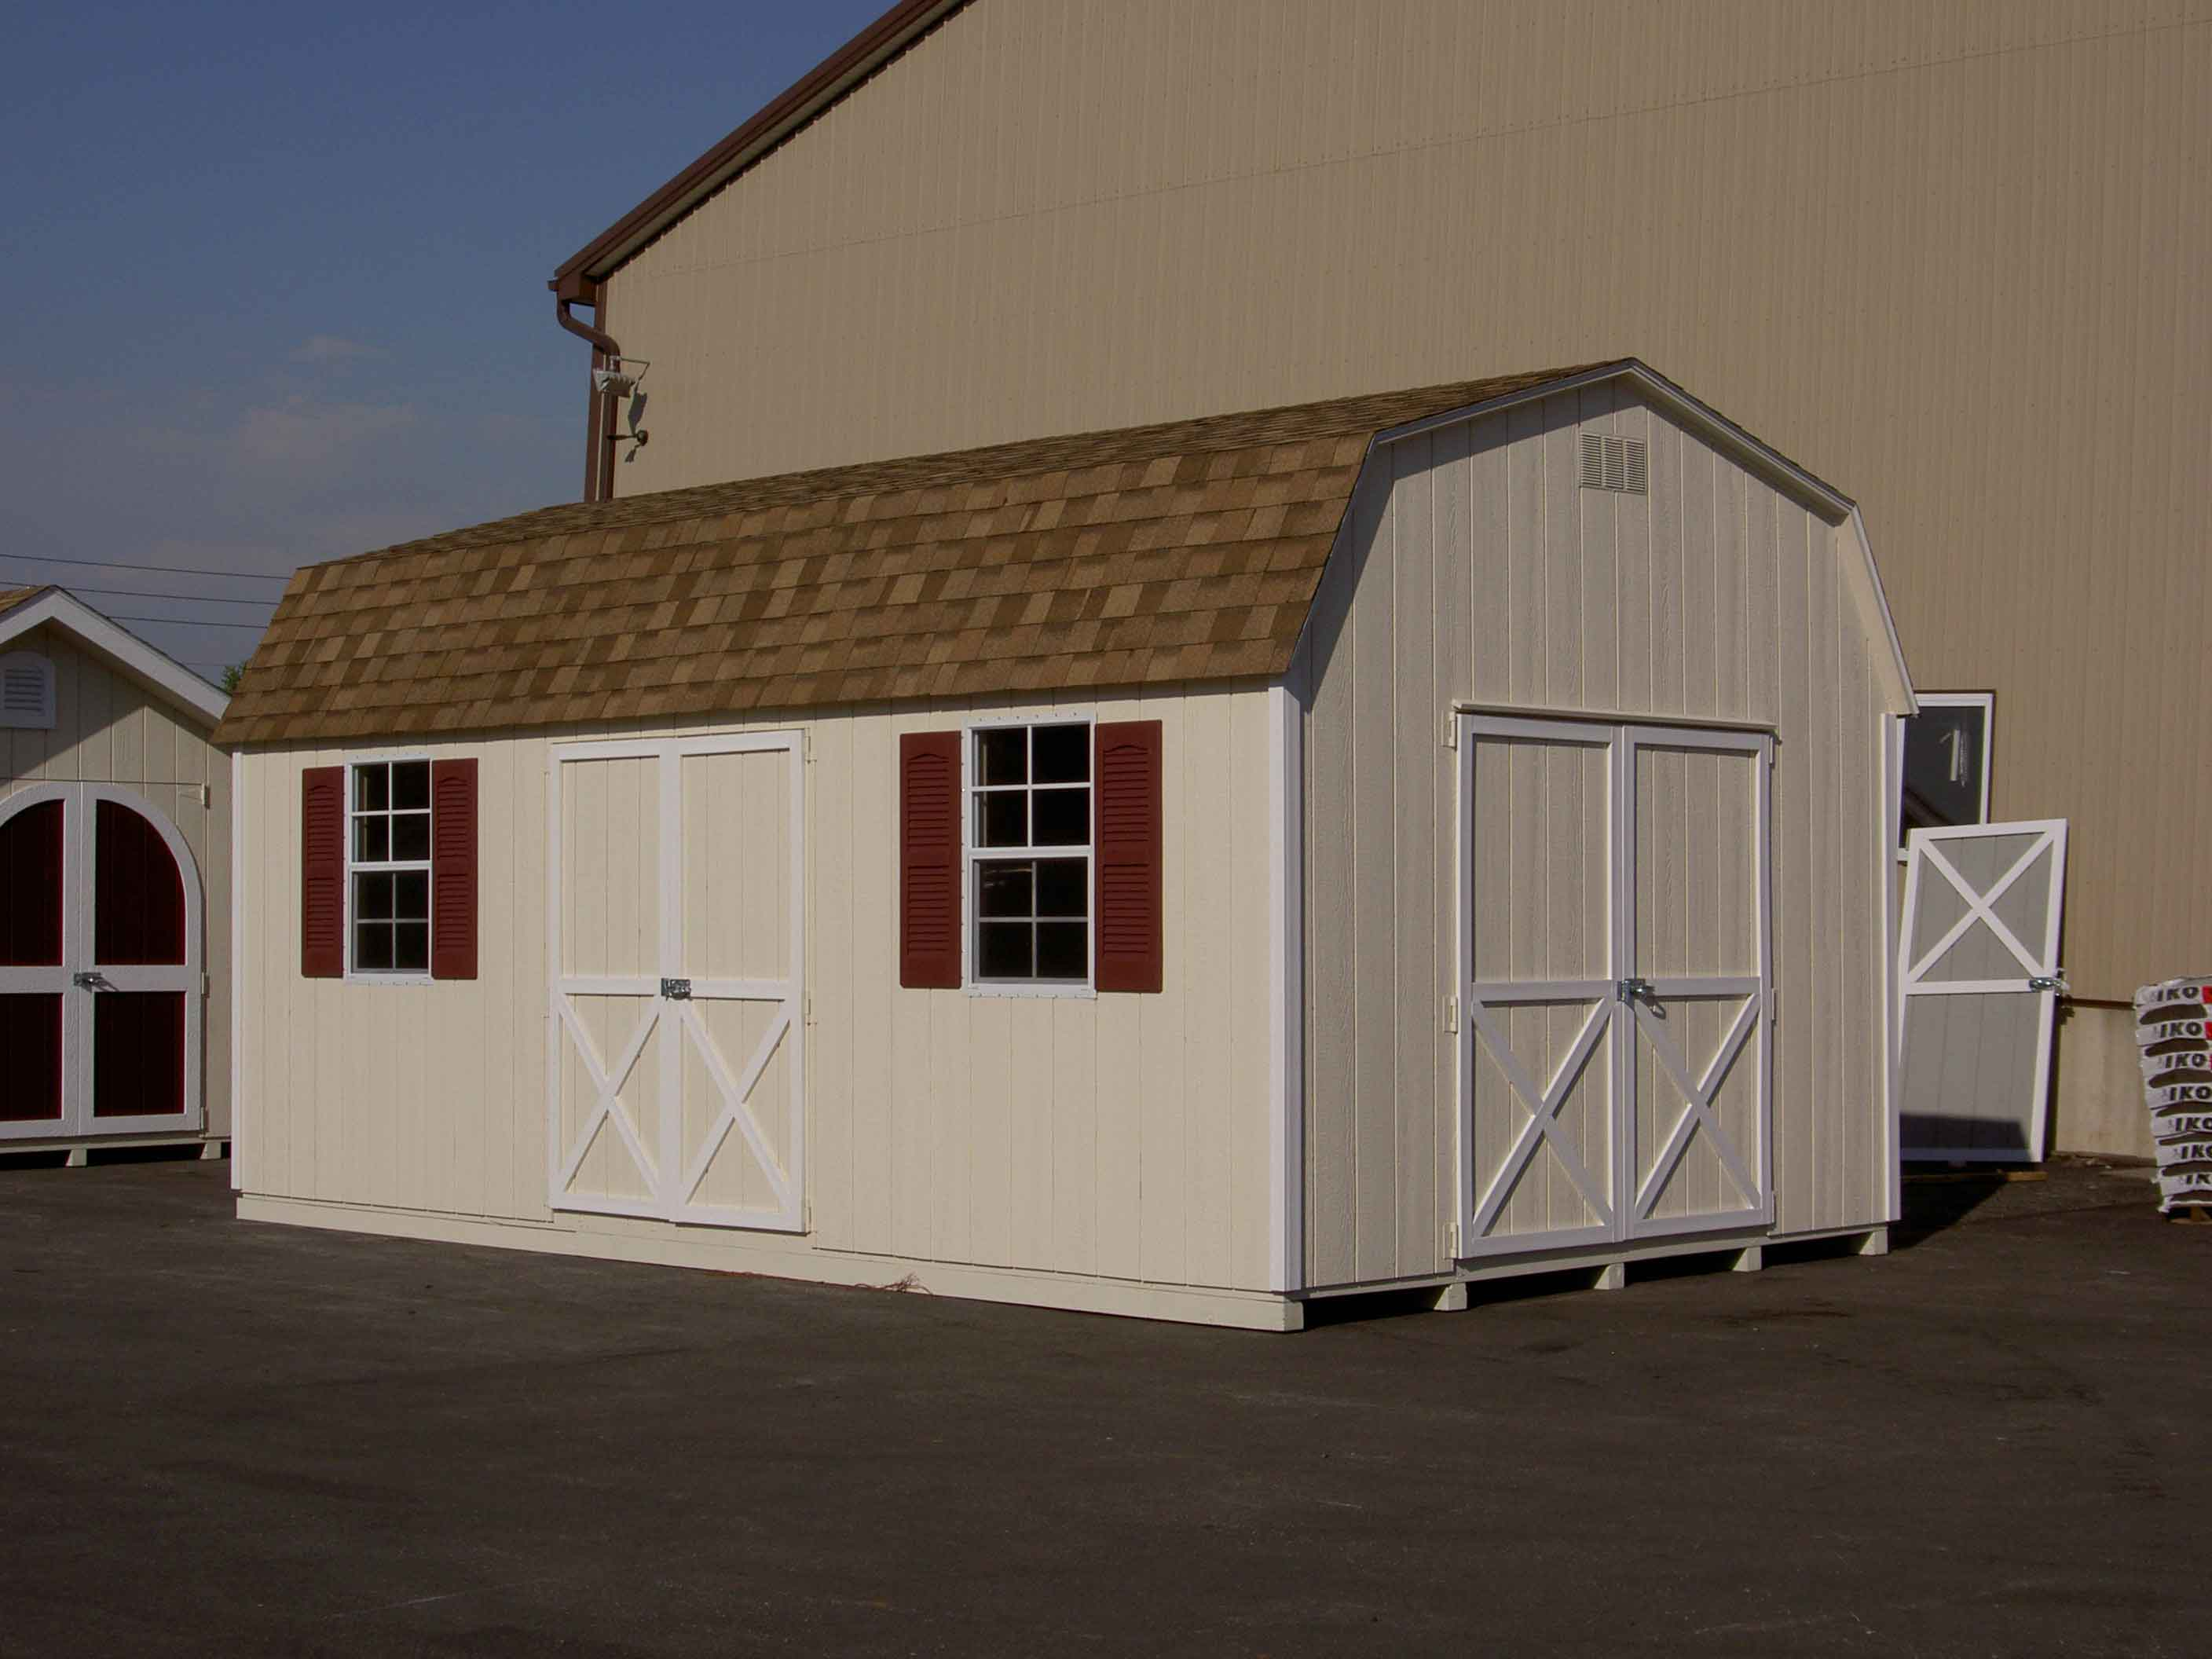 build picture sheds shed how easy to for outdoor ramp ramps make pictures a useful